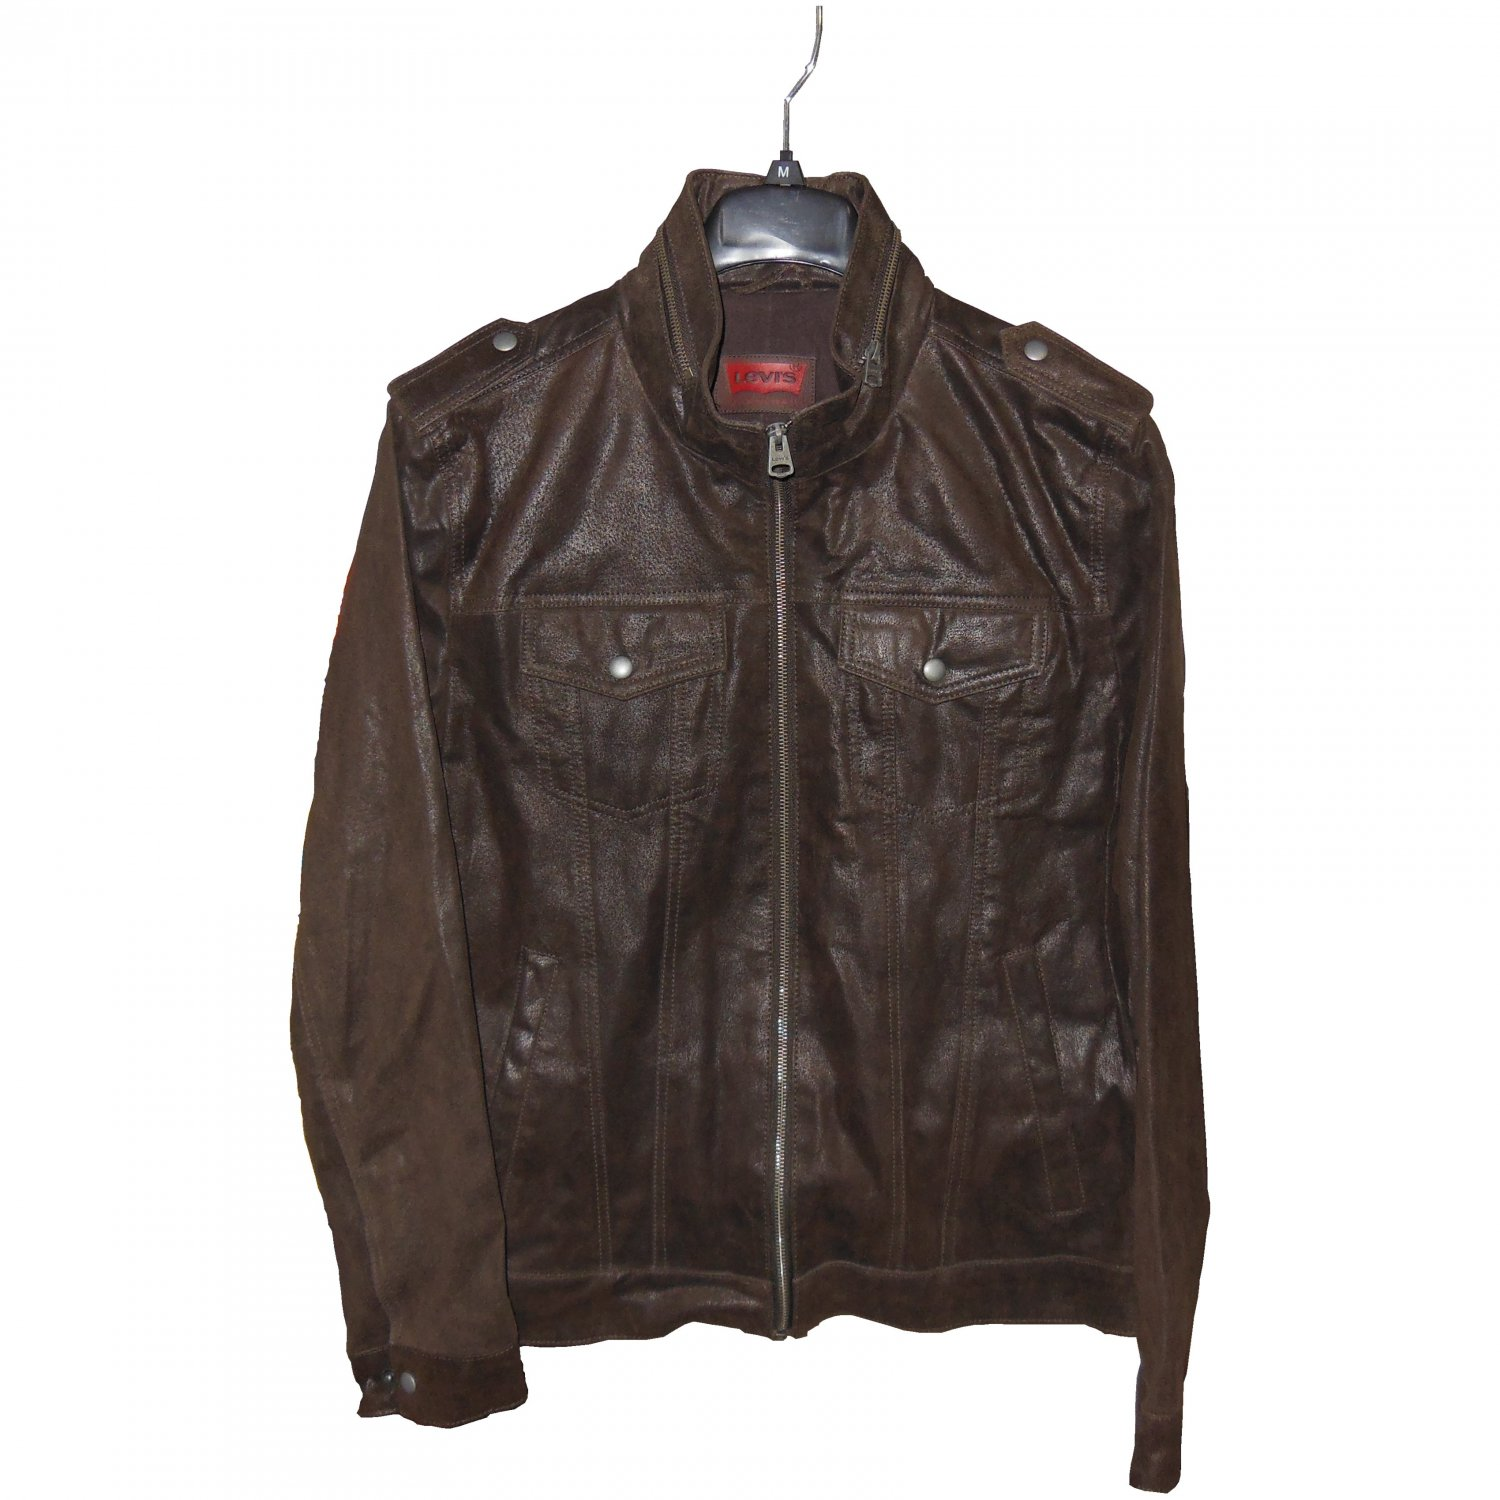 Levi's Zip Military Trucker 100% Leather Jacket Dark Brown LM3R6400, Medium